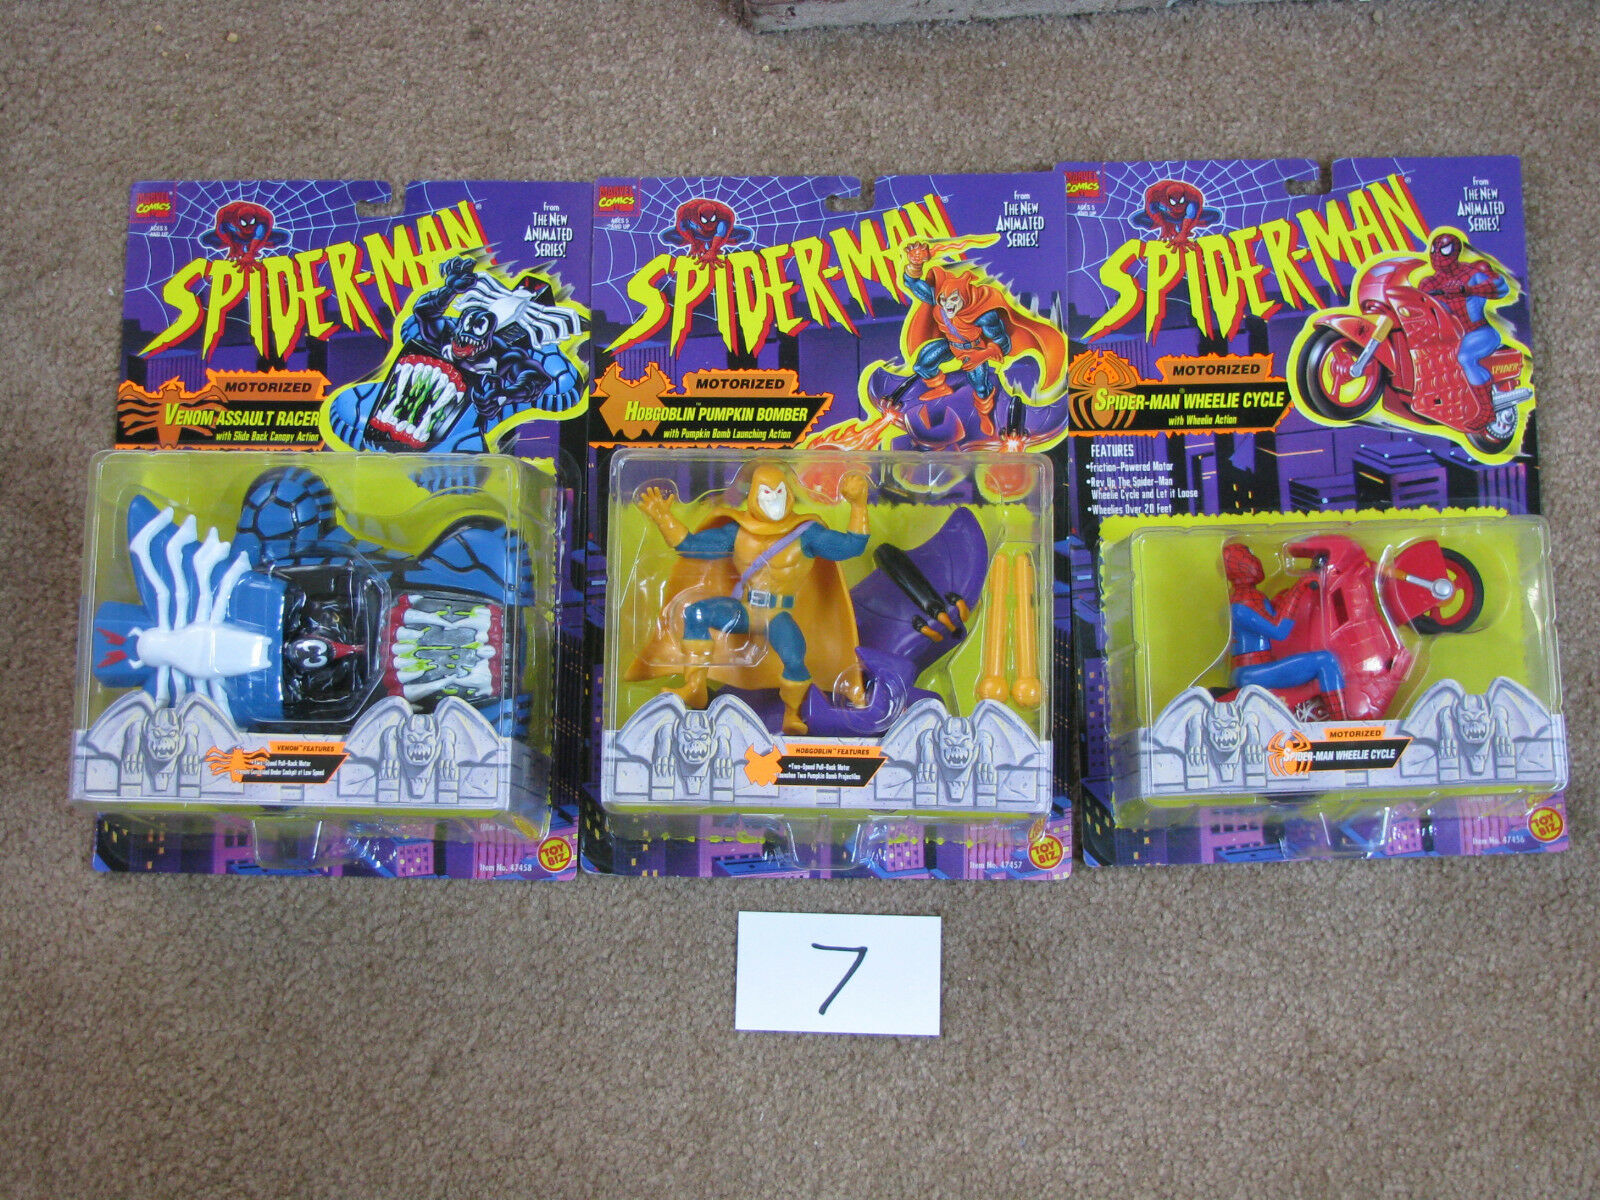 Spider-Man Animated Series 1- 3 Motorized Vehicles - New unopened